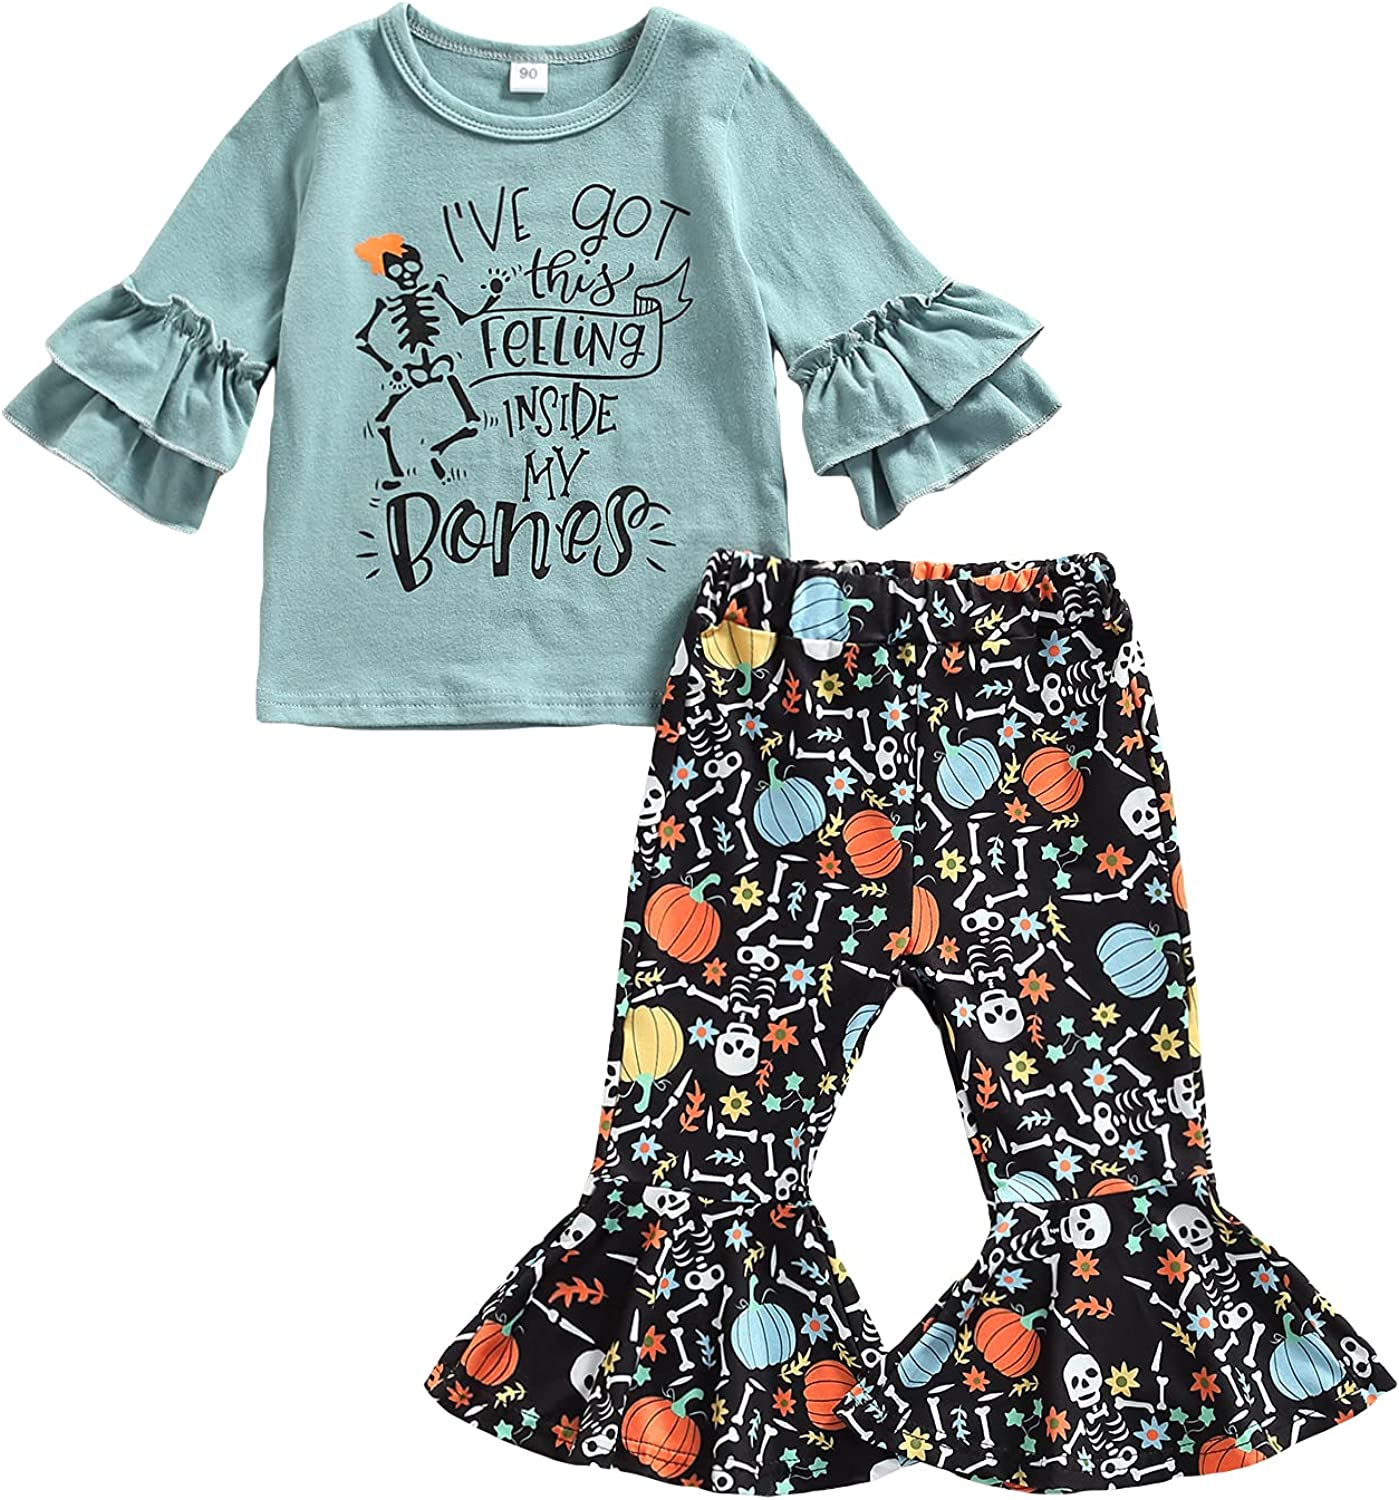 Kids Toddler Baby Girl Halloween Outfits Long Sleeve Sweatshirt Ruffle Shirts Tops with Pumpkin Flare Pants Clothes Set